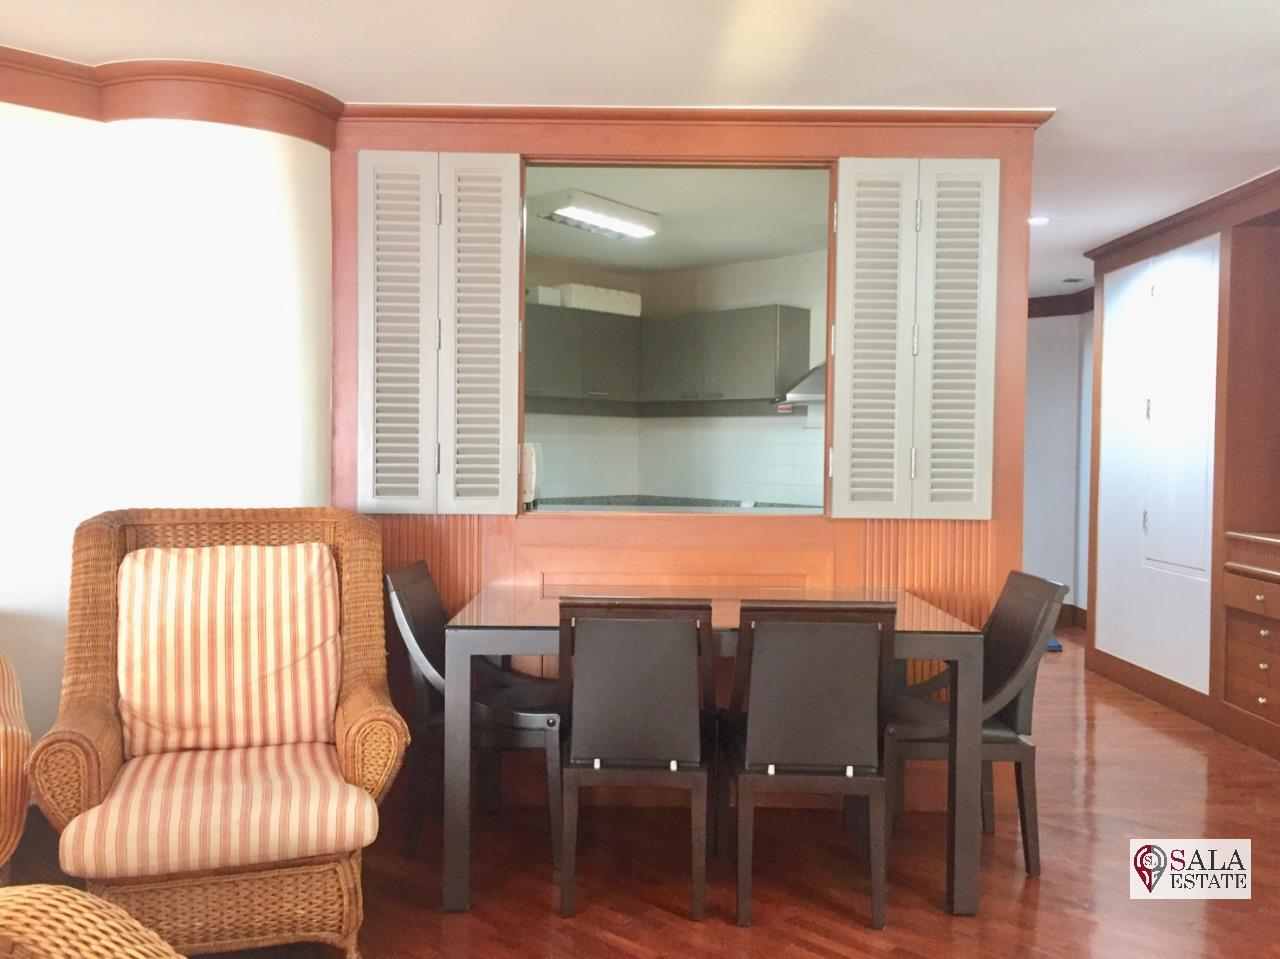 SALA ESTATE Agency's TRIDHOS CITY MARINA – RIVERSIDE-NEAR ICON SIAM-PET ALLOWED, 2 Bedroom 2 Bathroom, Fully furnished, River View 10